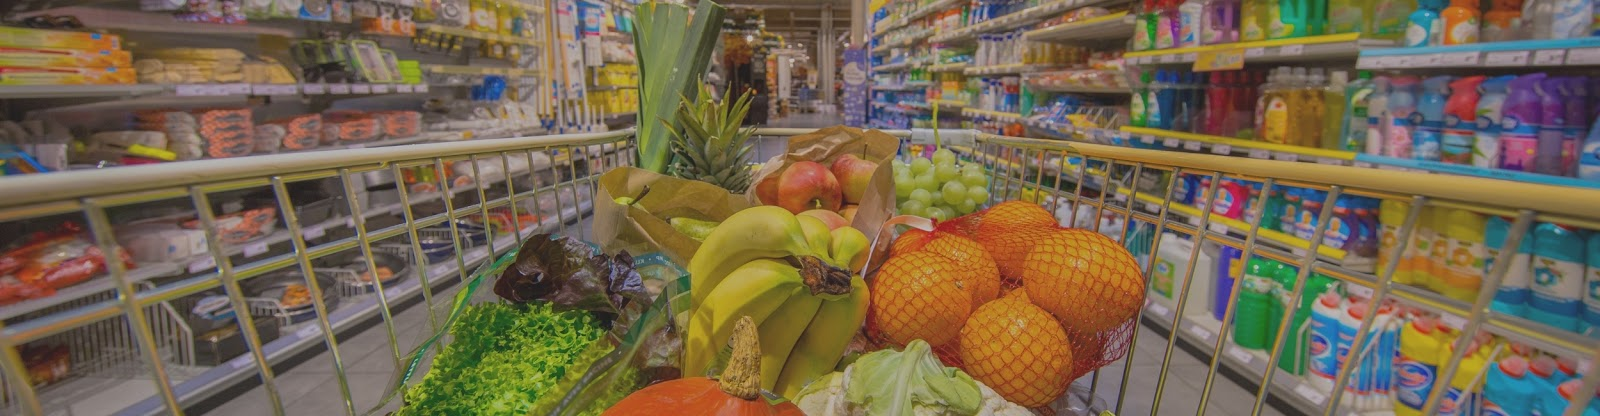 Improve Grocery Store Customer Experience